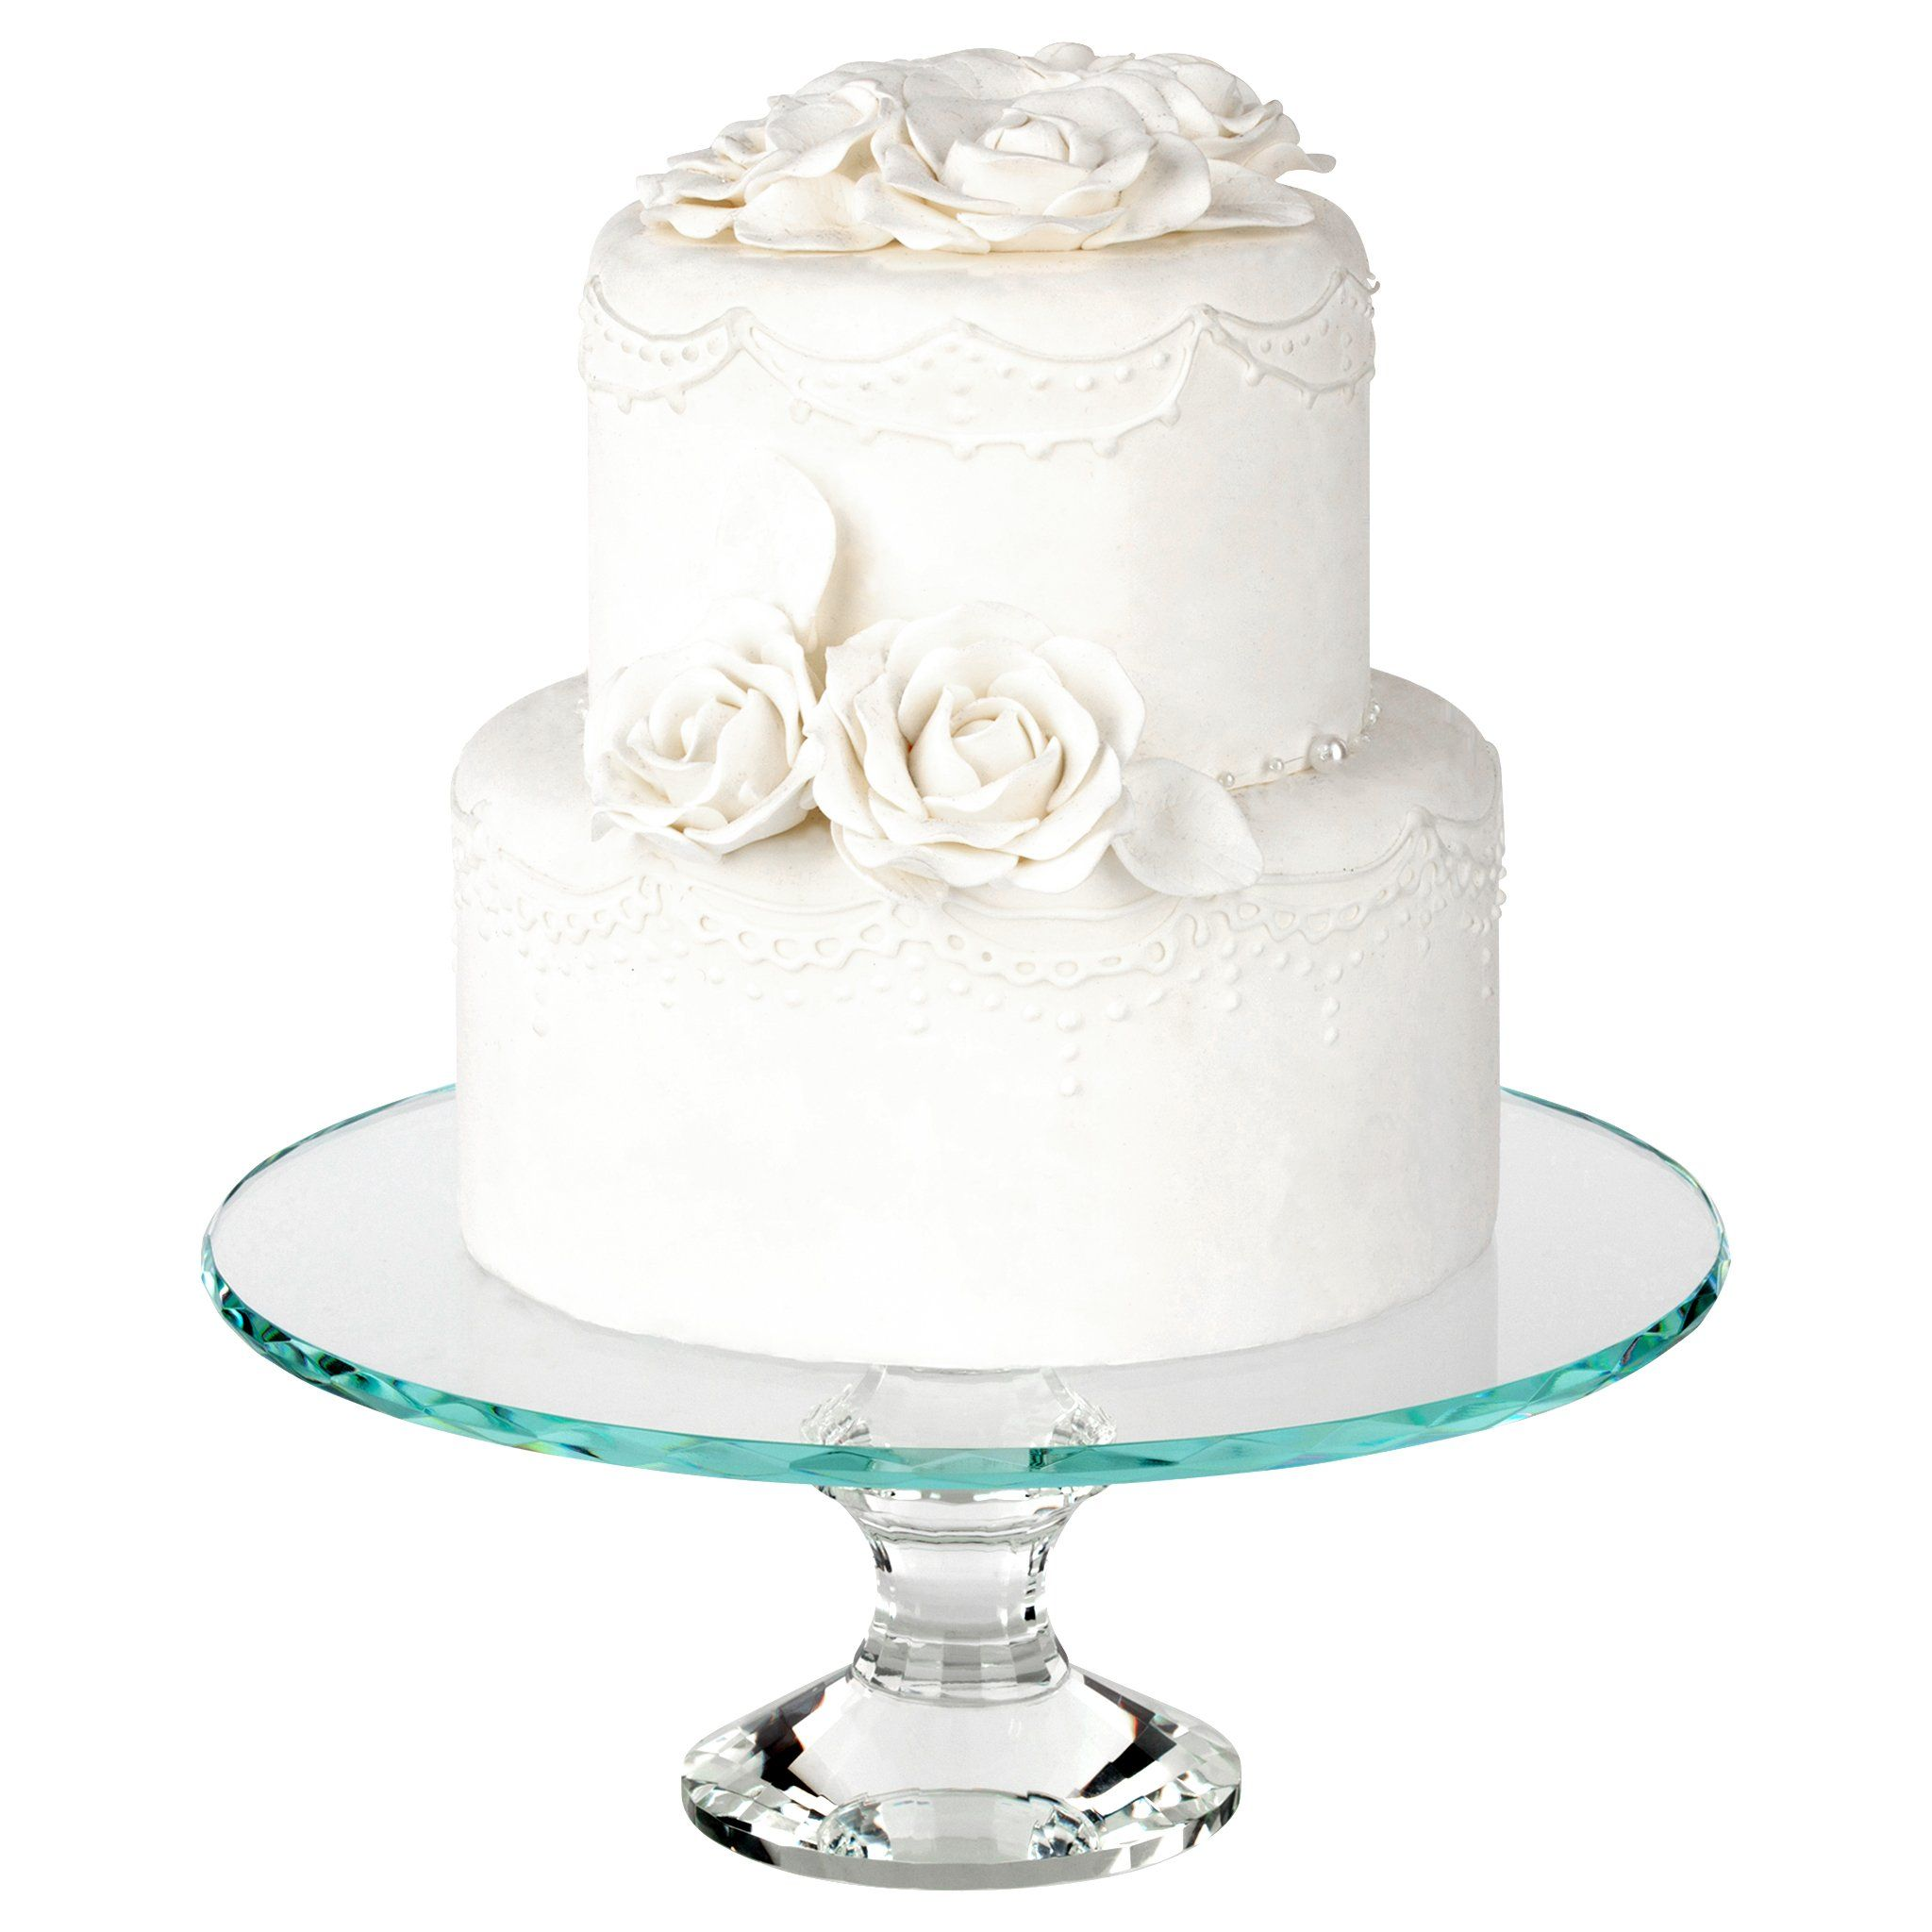 12 Inch Solid Crystal Cake Stand | Crystal cake stand, Wedding cake ...